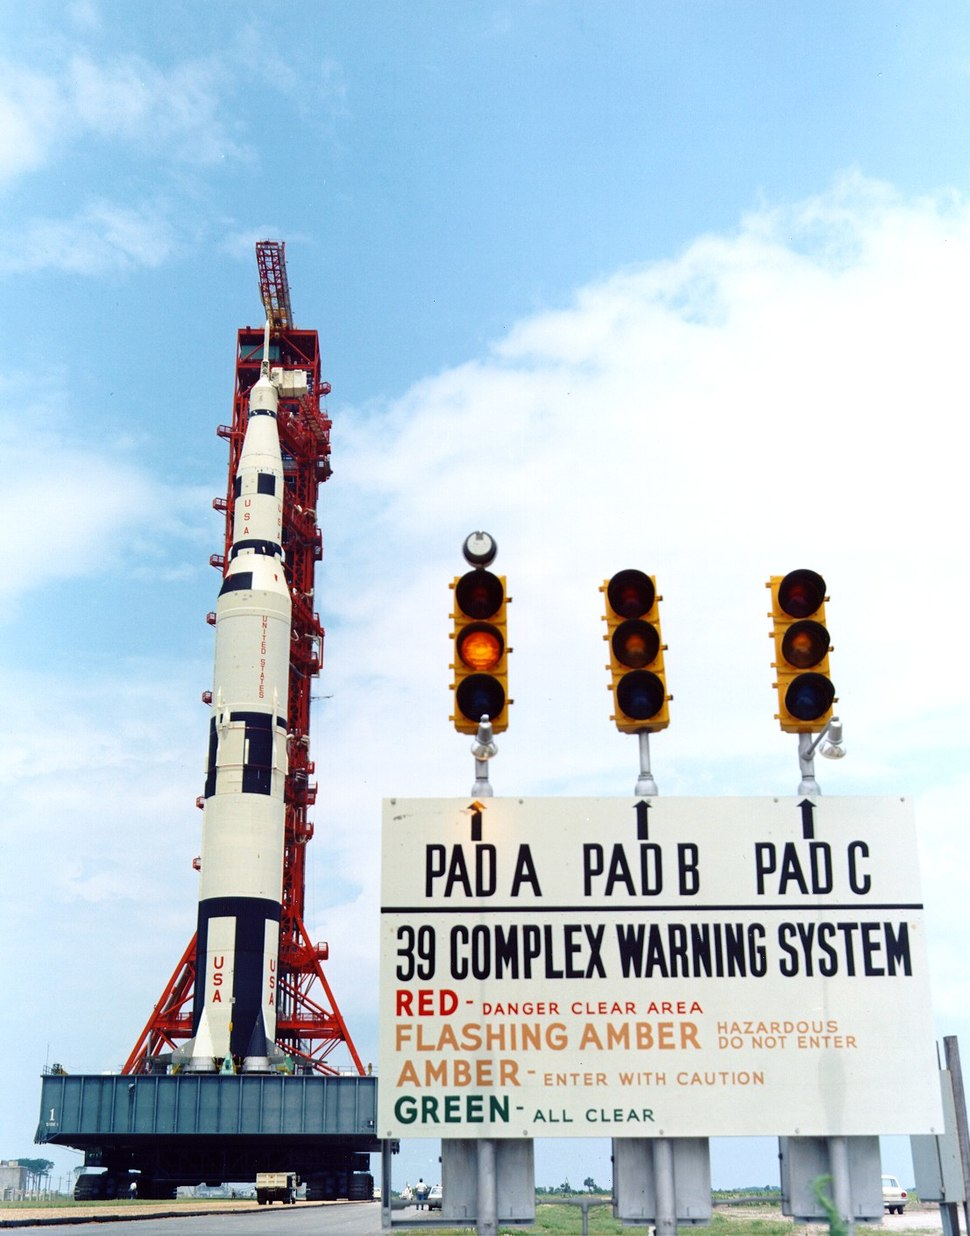 Lc39 warning lamps